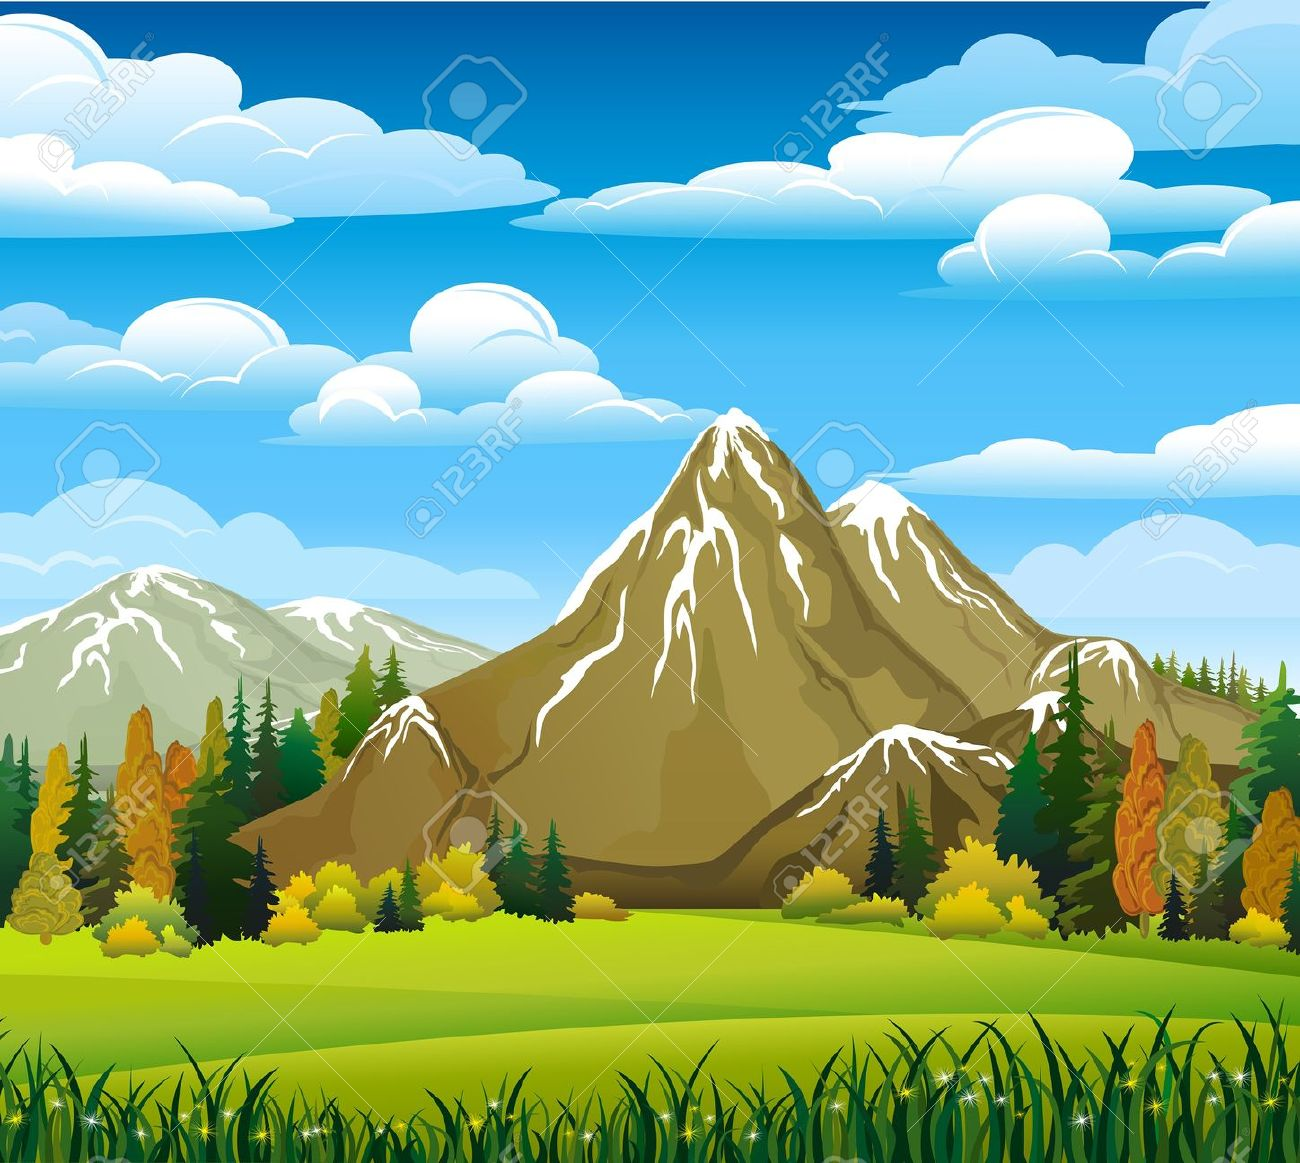 Mountain clipart ground Background Moutain clipart